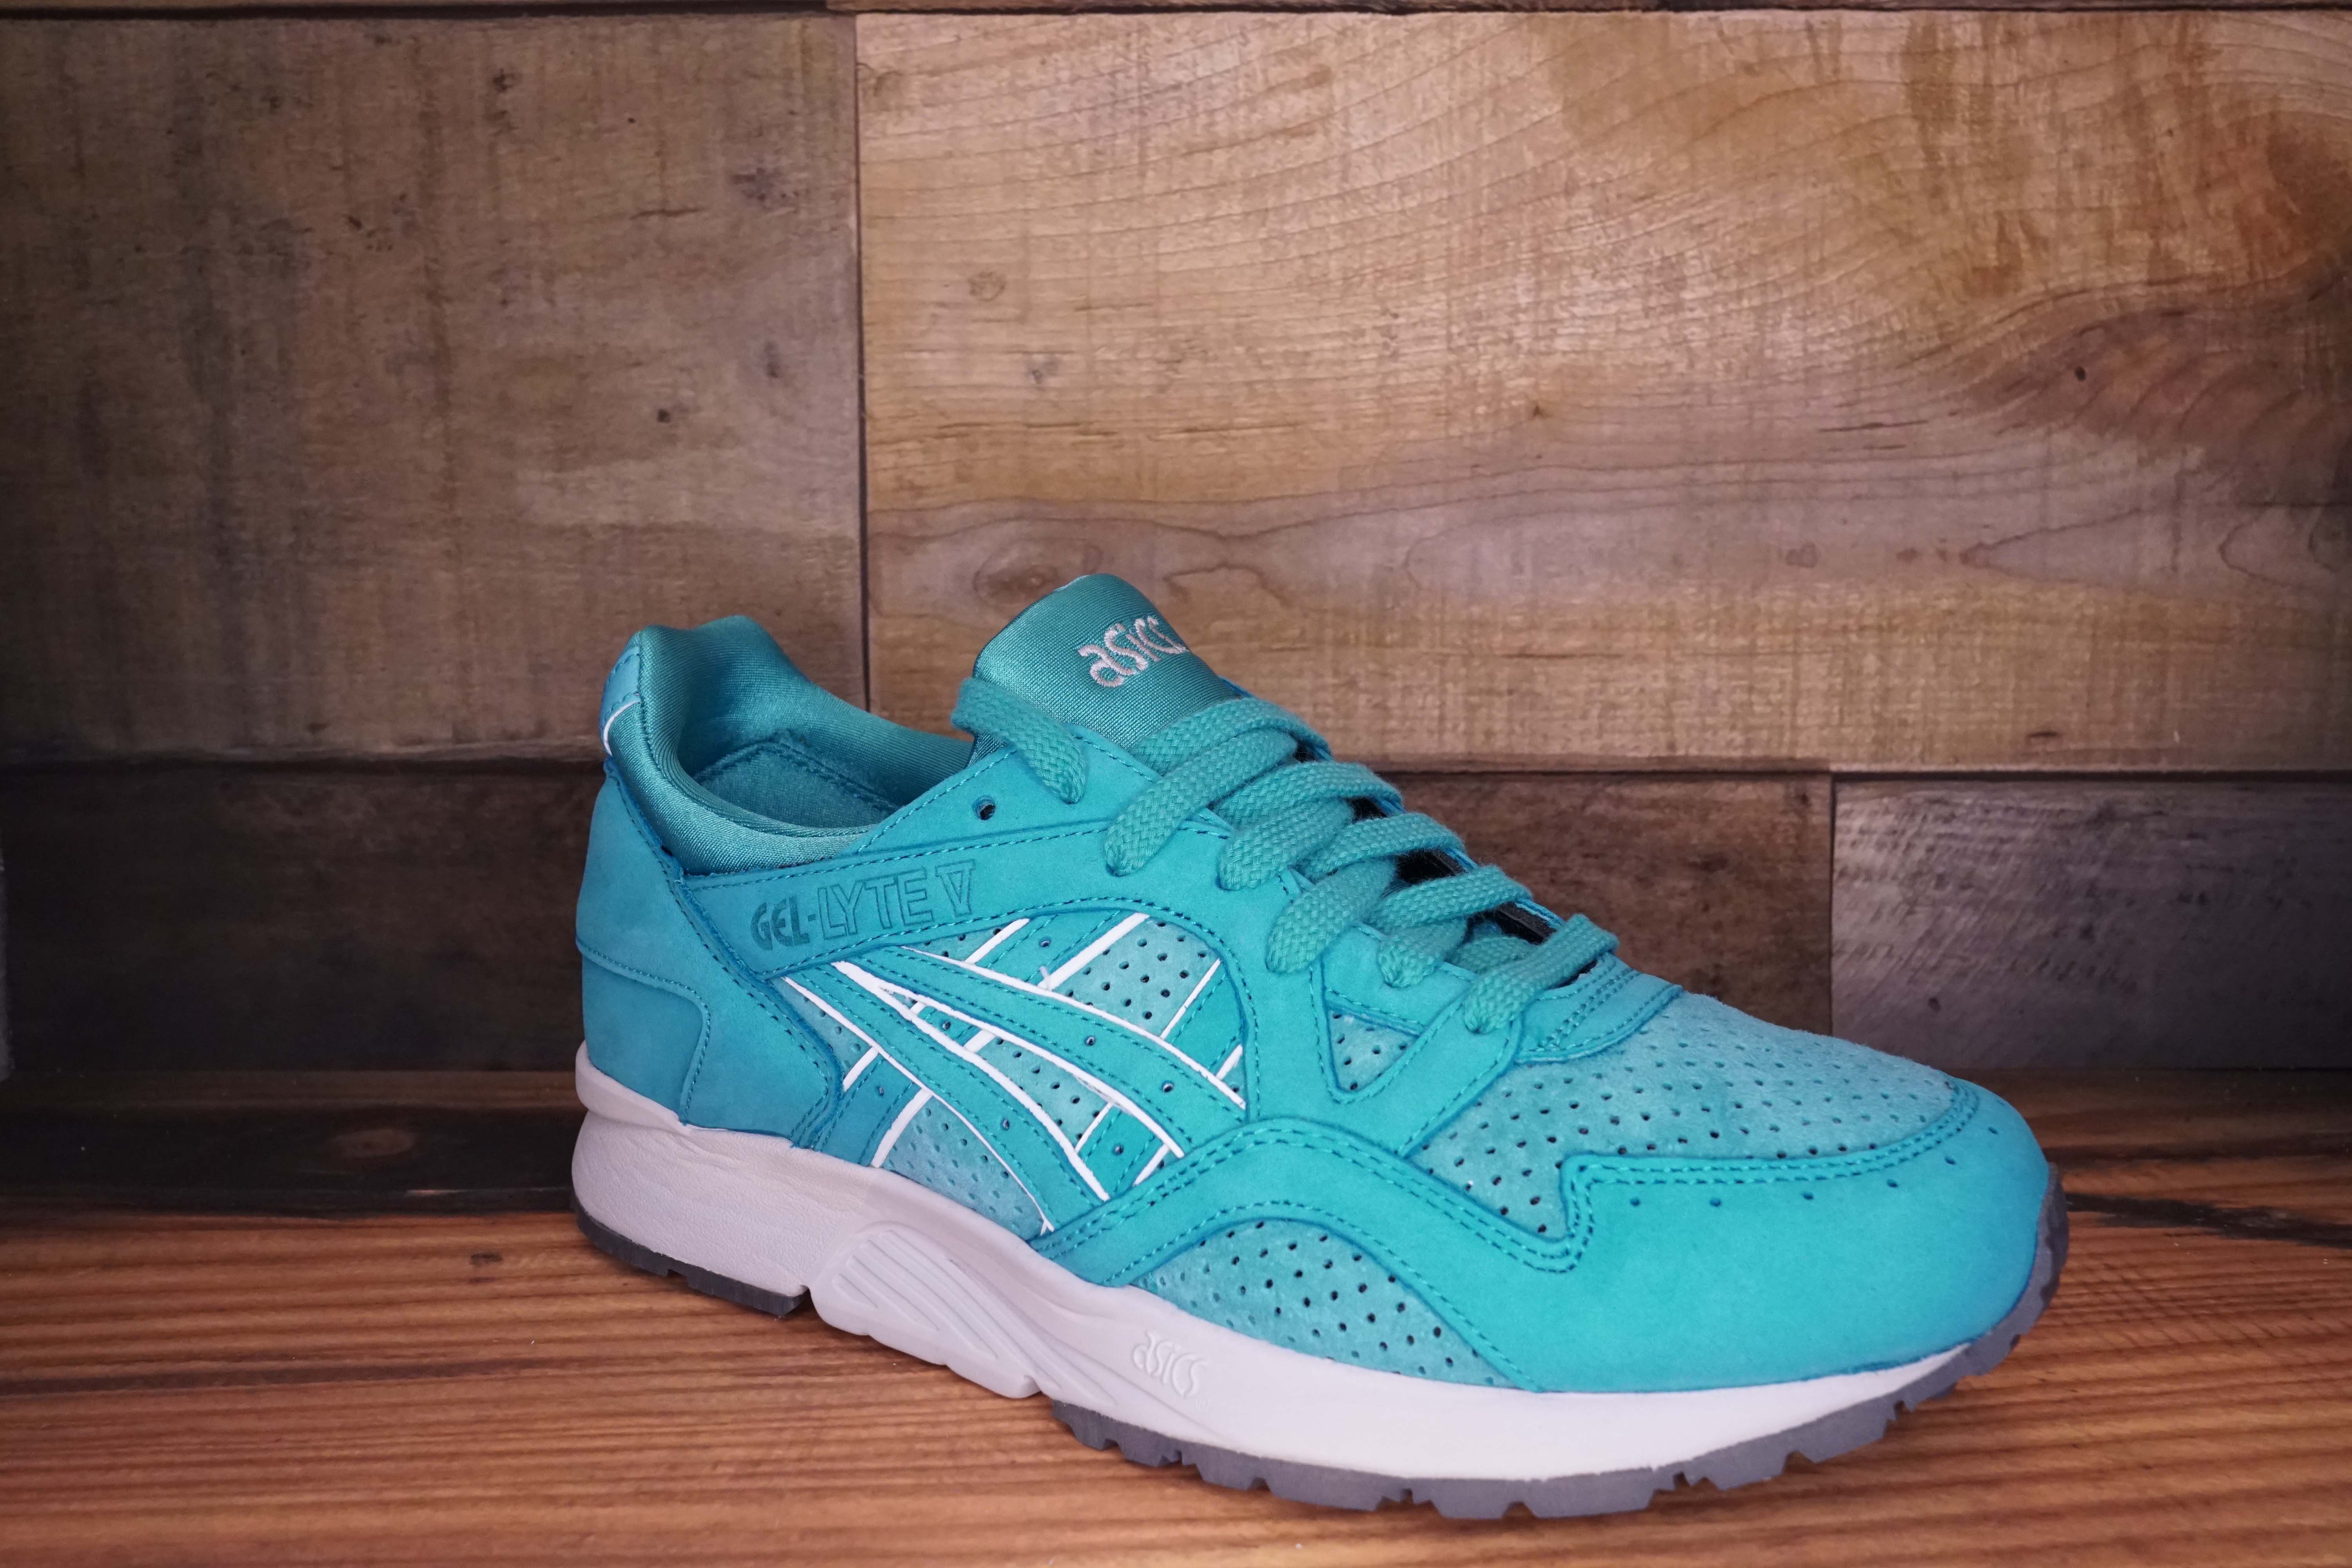 Asics-Gel-Lyte-V-COVE-Size-8.5-New-with-Original-Box_1694B.jpg